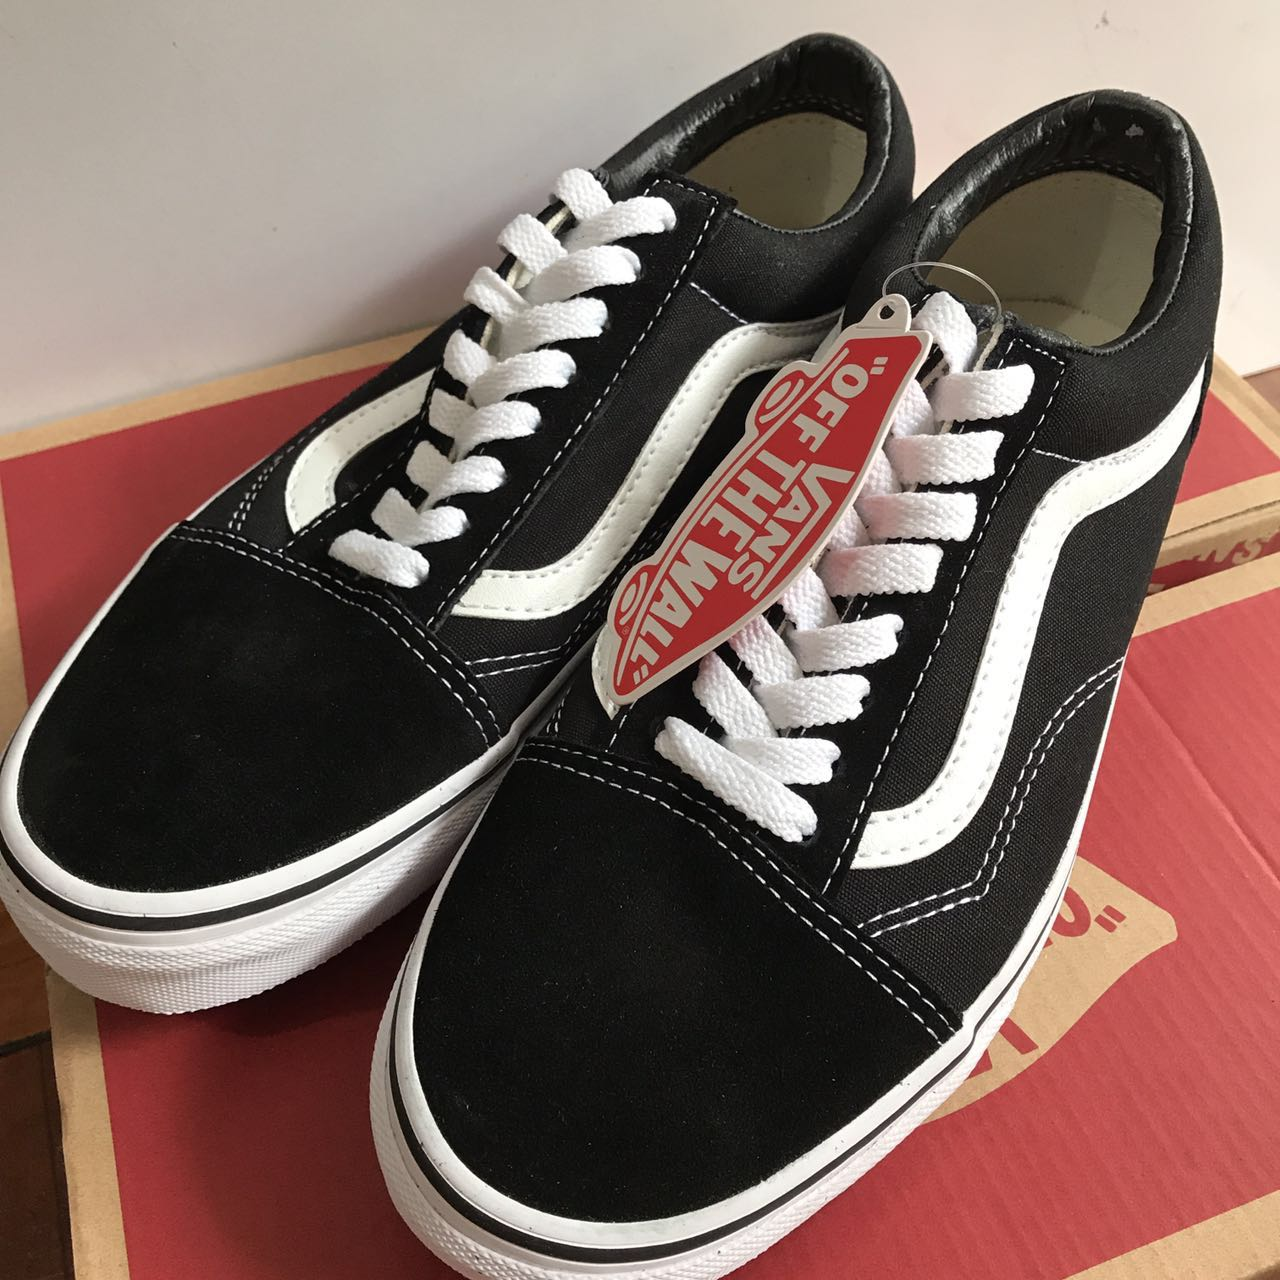 vans old skool黑白